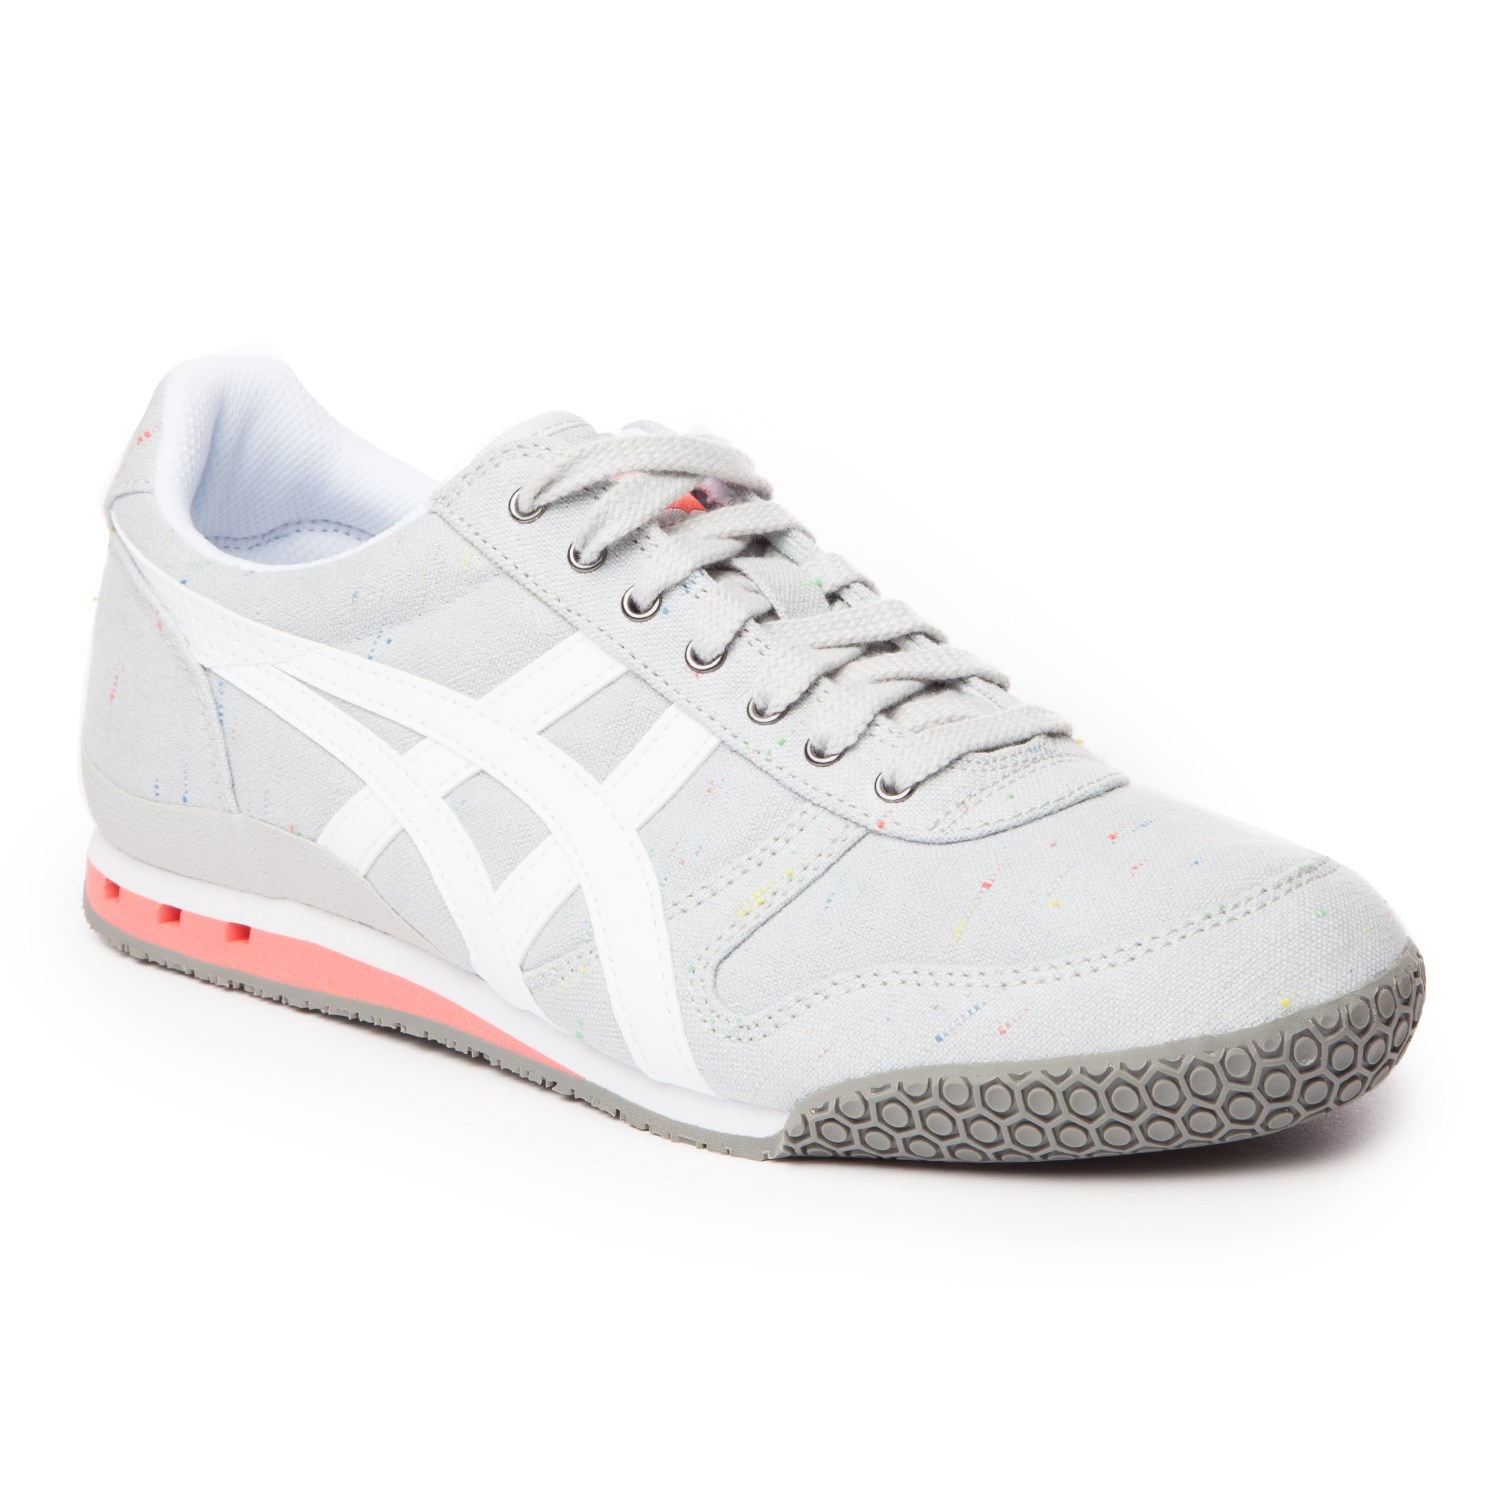 premium selection 82d21 fc324 Onitsuka Tiger Ultimate 81® Shoes - Women's | evo